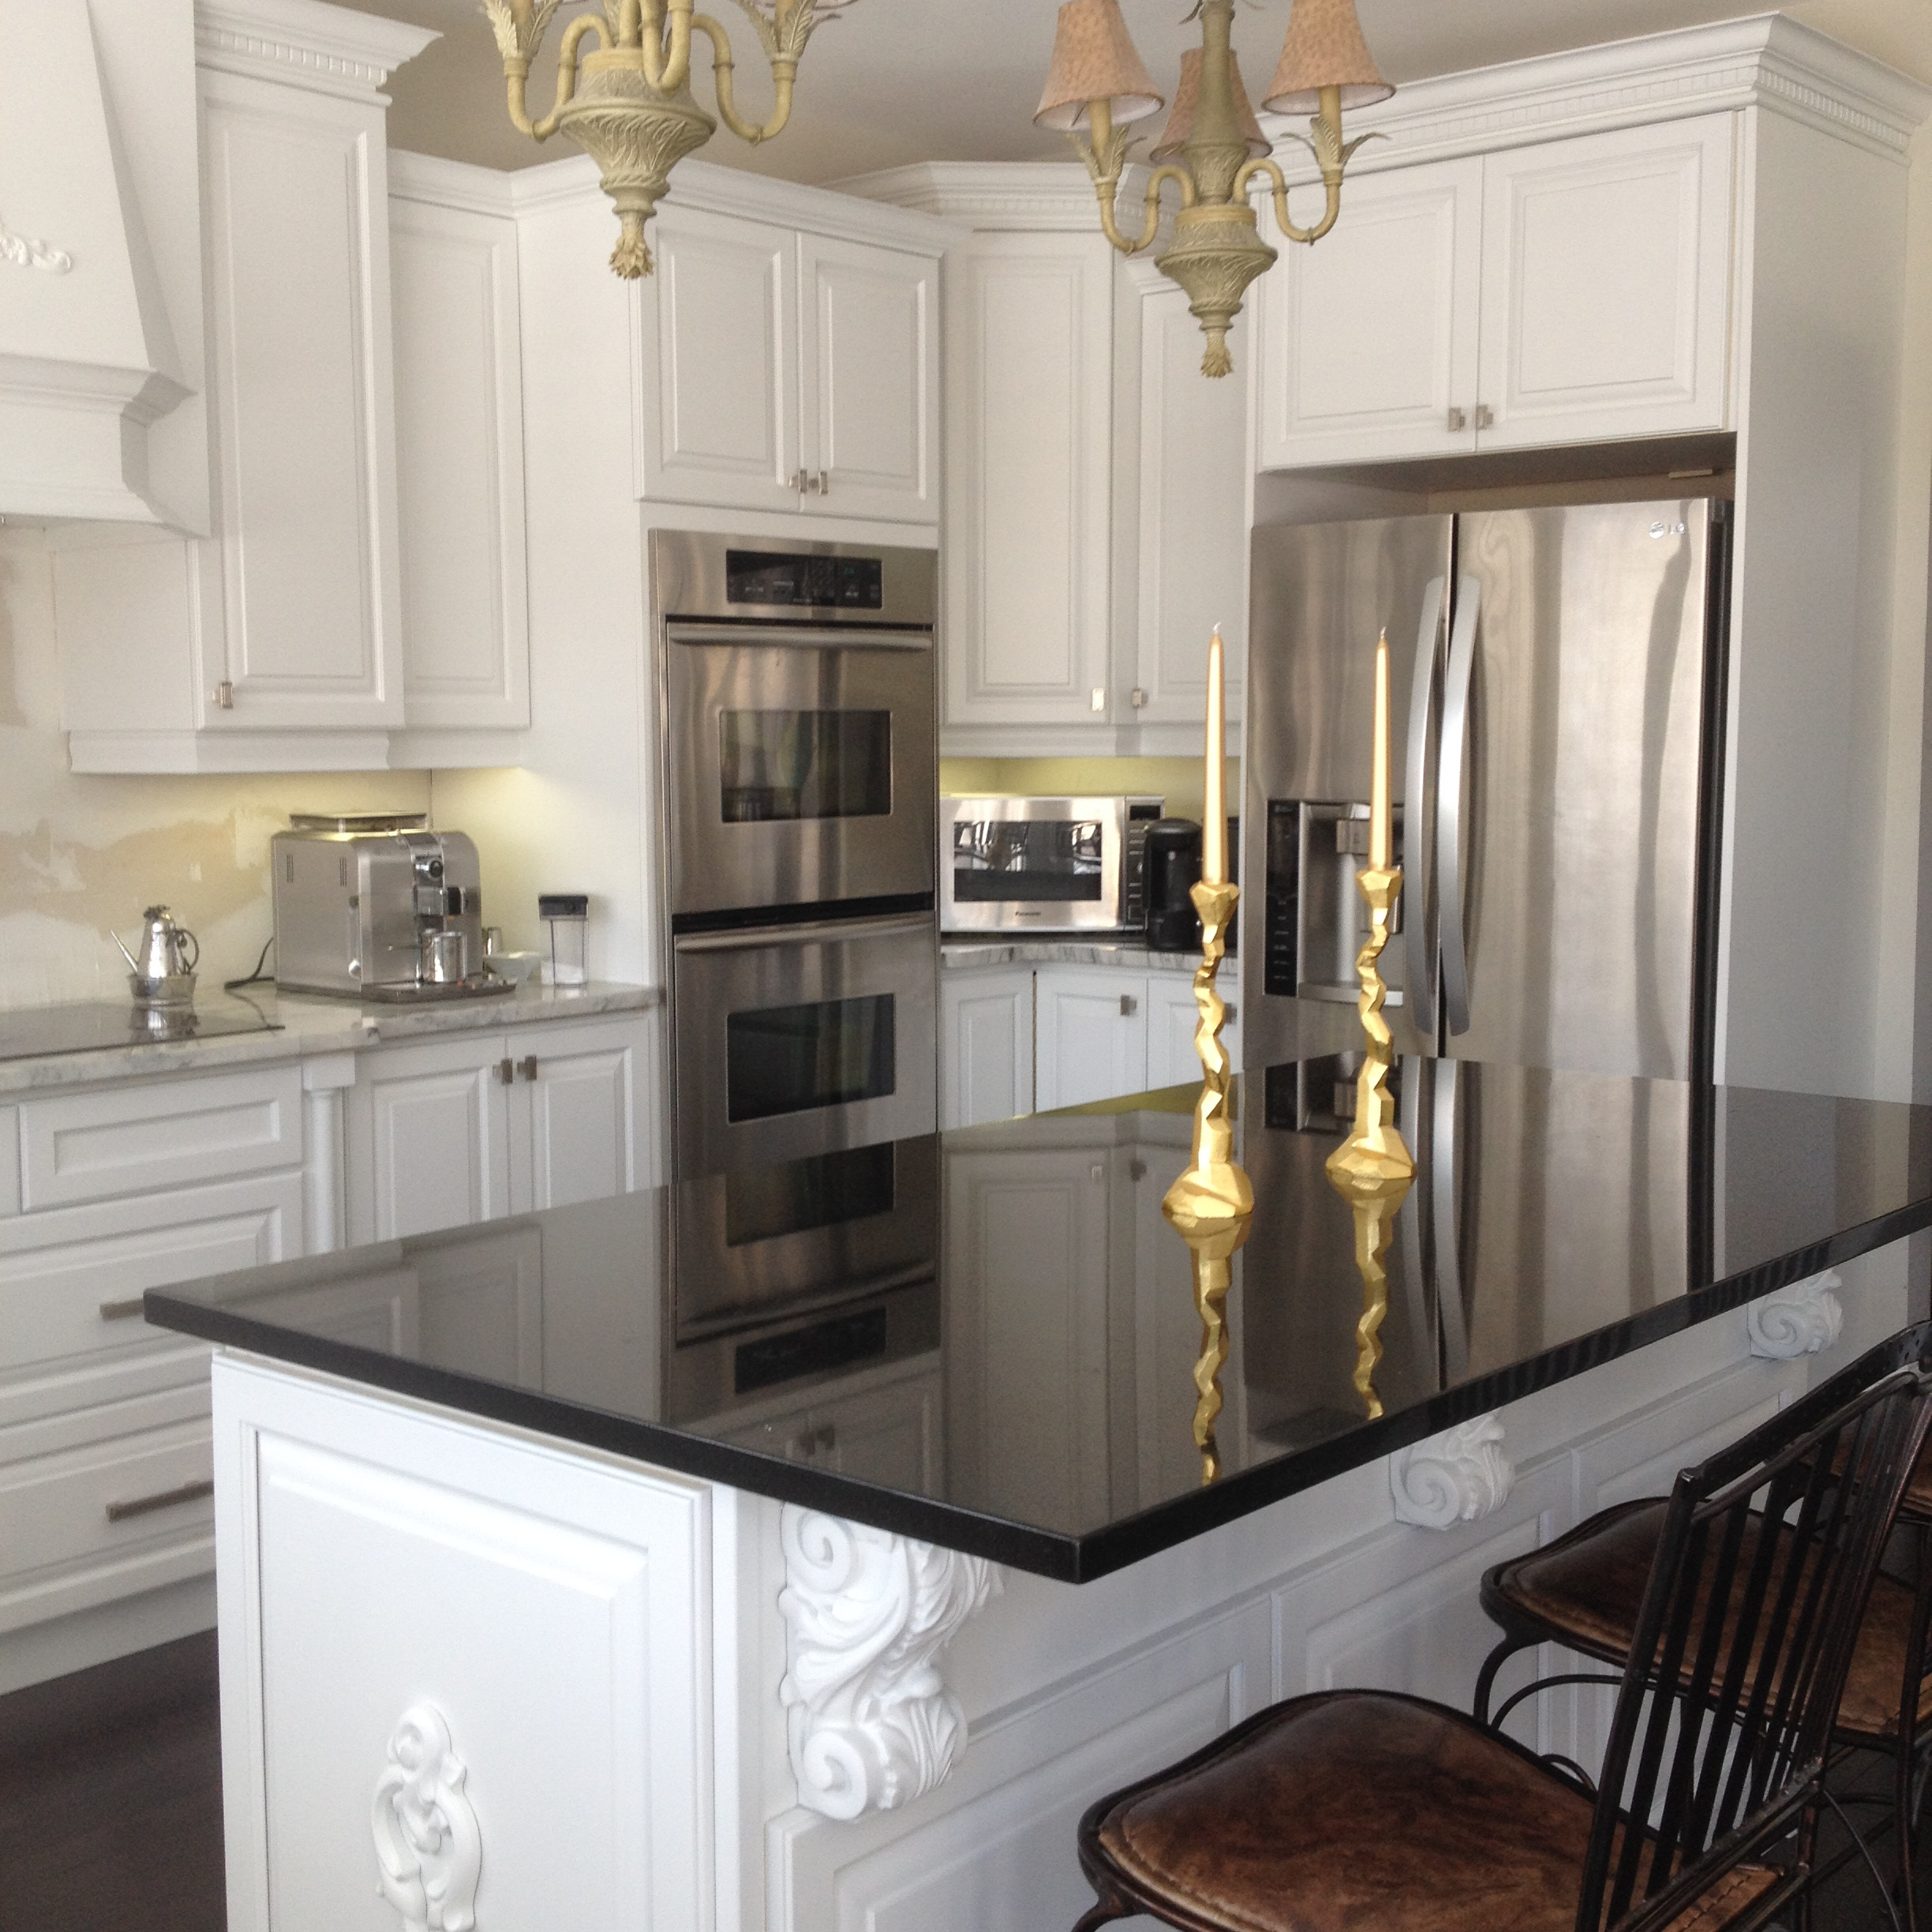 hardwood floor refinishing burlington ontario of cabinet refinishing spray painting and kitchen cabinet painting in for as a professional interior painter in oakville mississauga burlington and milton i often get requests to provide advice on painting and refinishing